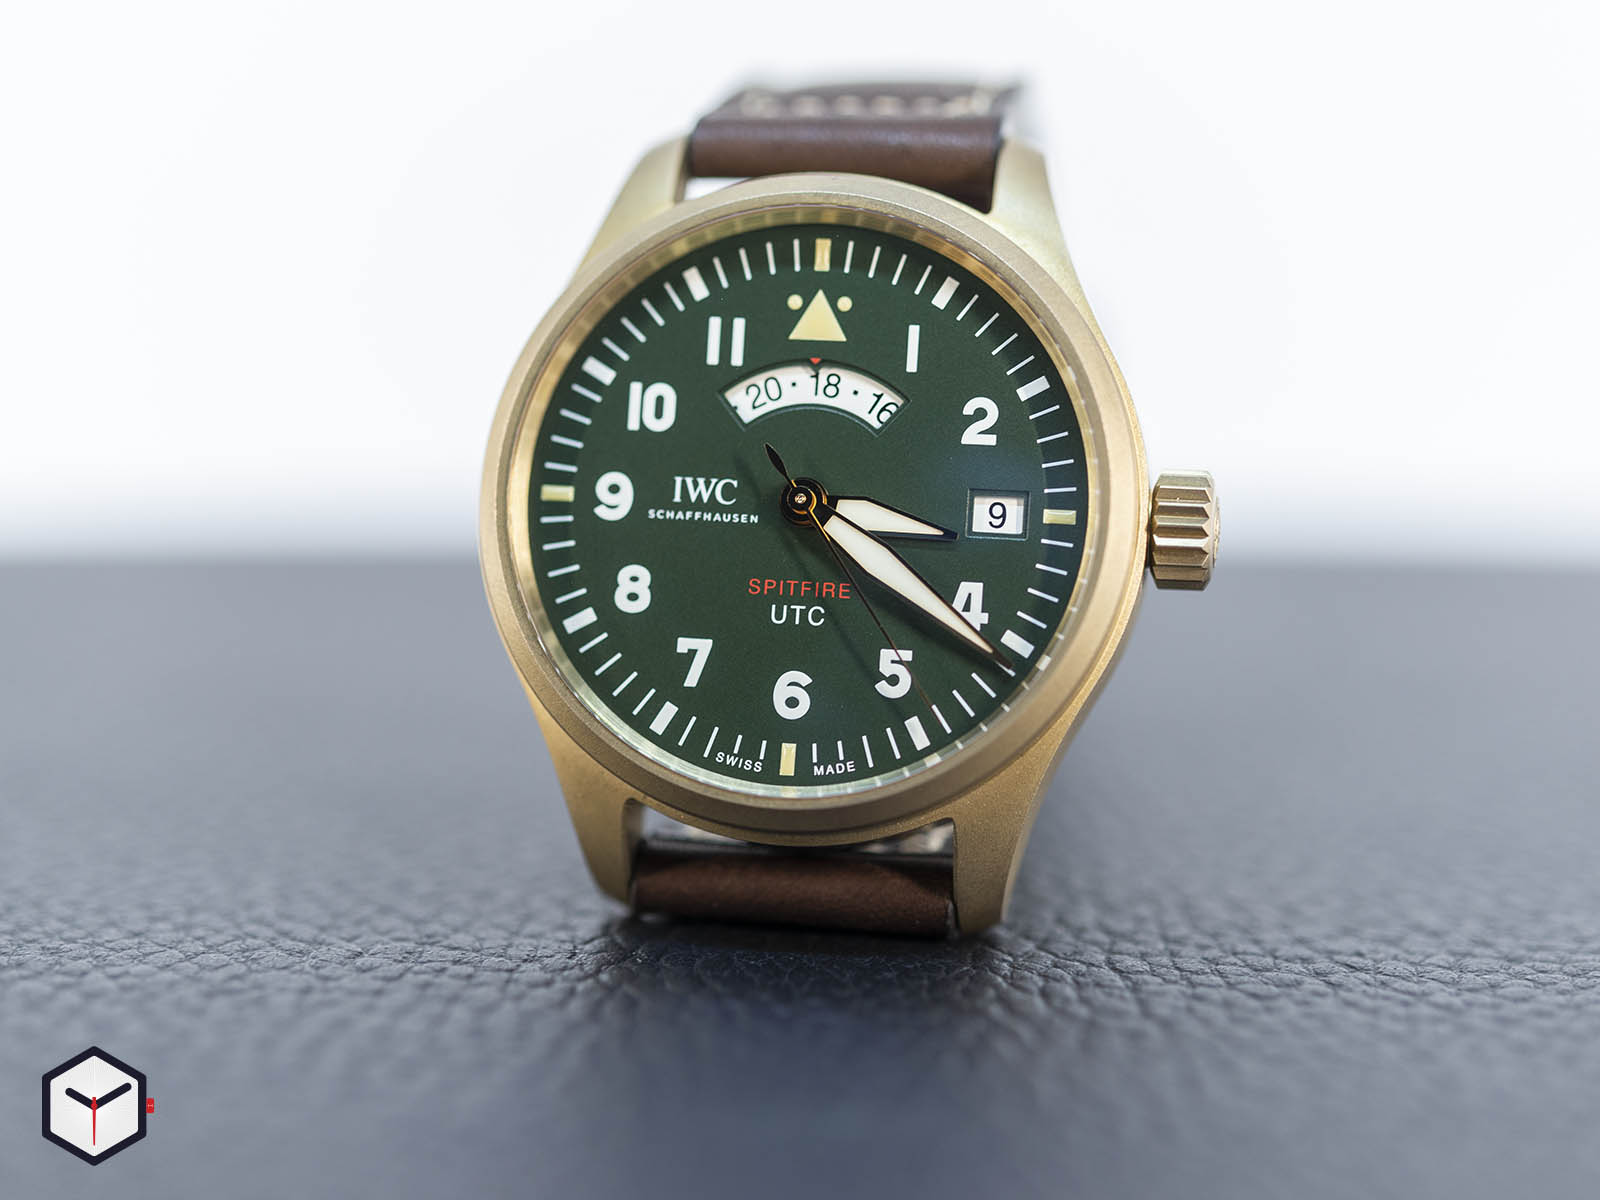 iw327101-iwc-pilot-s-watch-utc-spitfire-edition-mj271-2.jpg